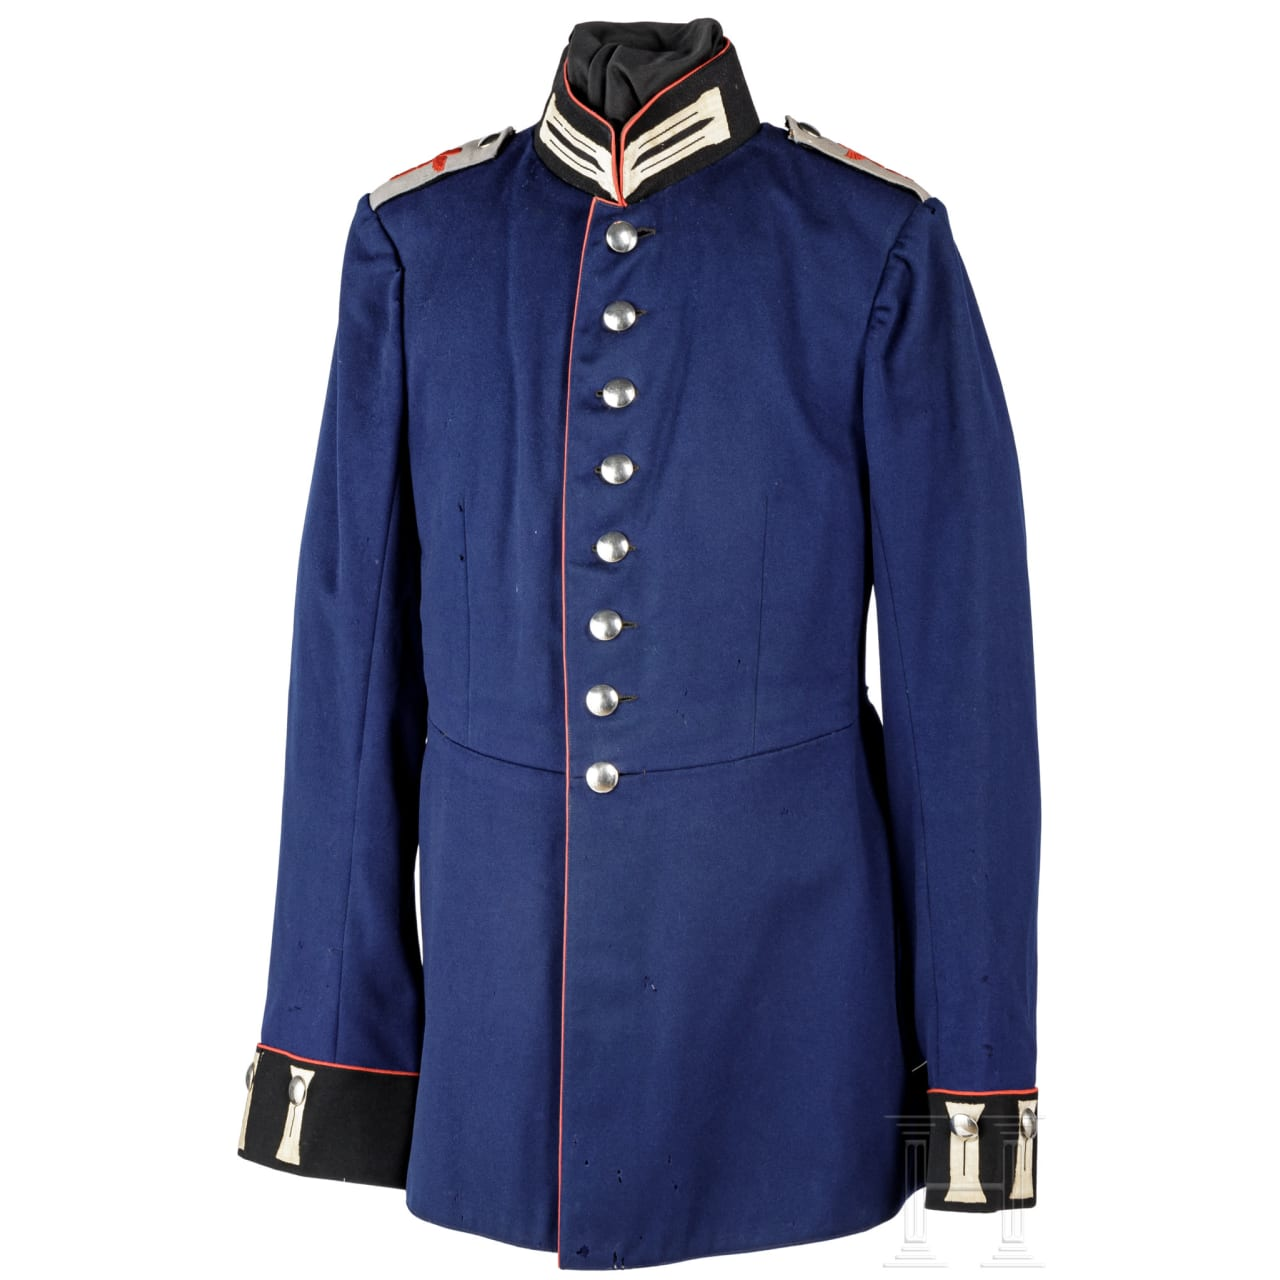 A parade tunic for EMs from the airmen replacement department 9